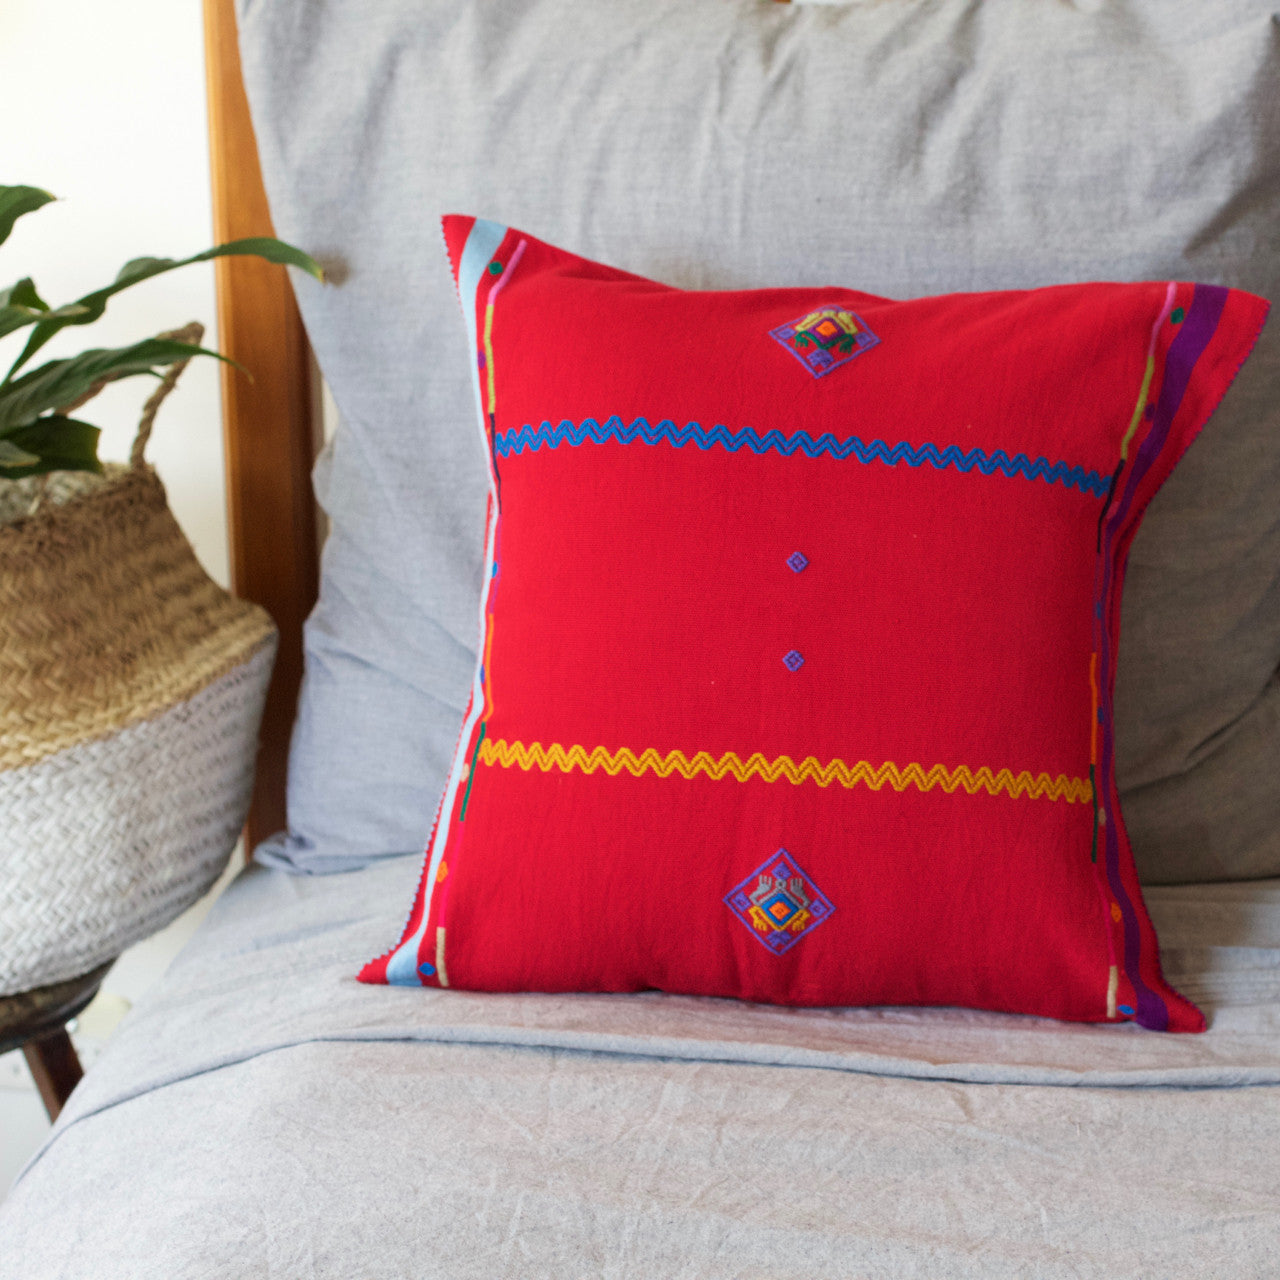 Sapo Cushion 01  Cushion Red with Purple & Pale Blue Stripe - Cielo Collective handmade Mexico Guatemala